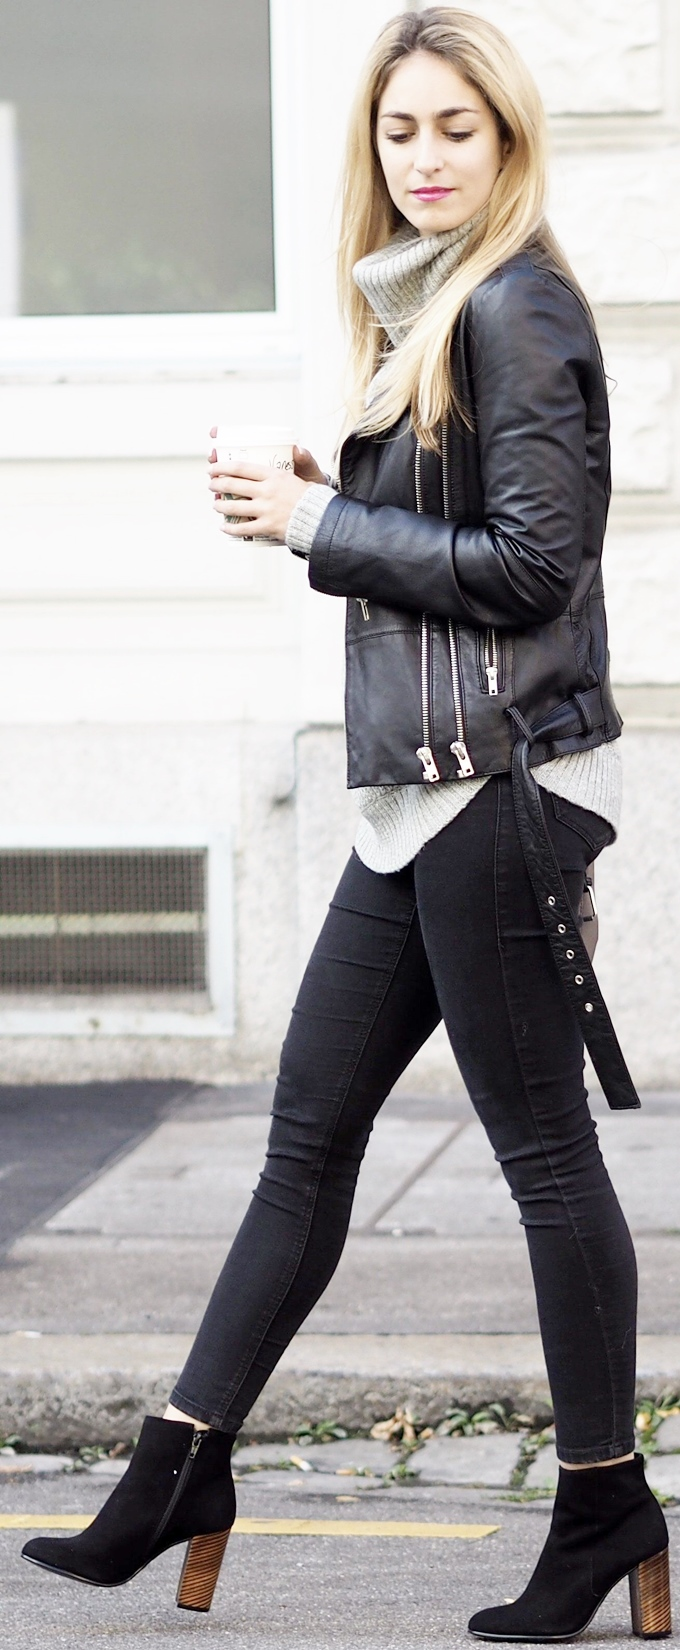 Fashionable-Work-Outfits-Ideas